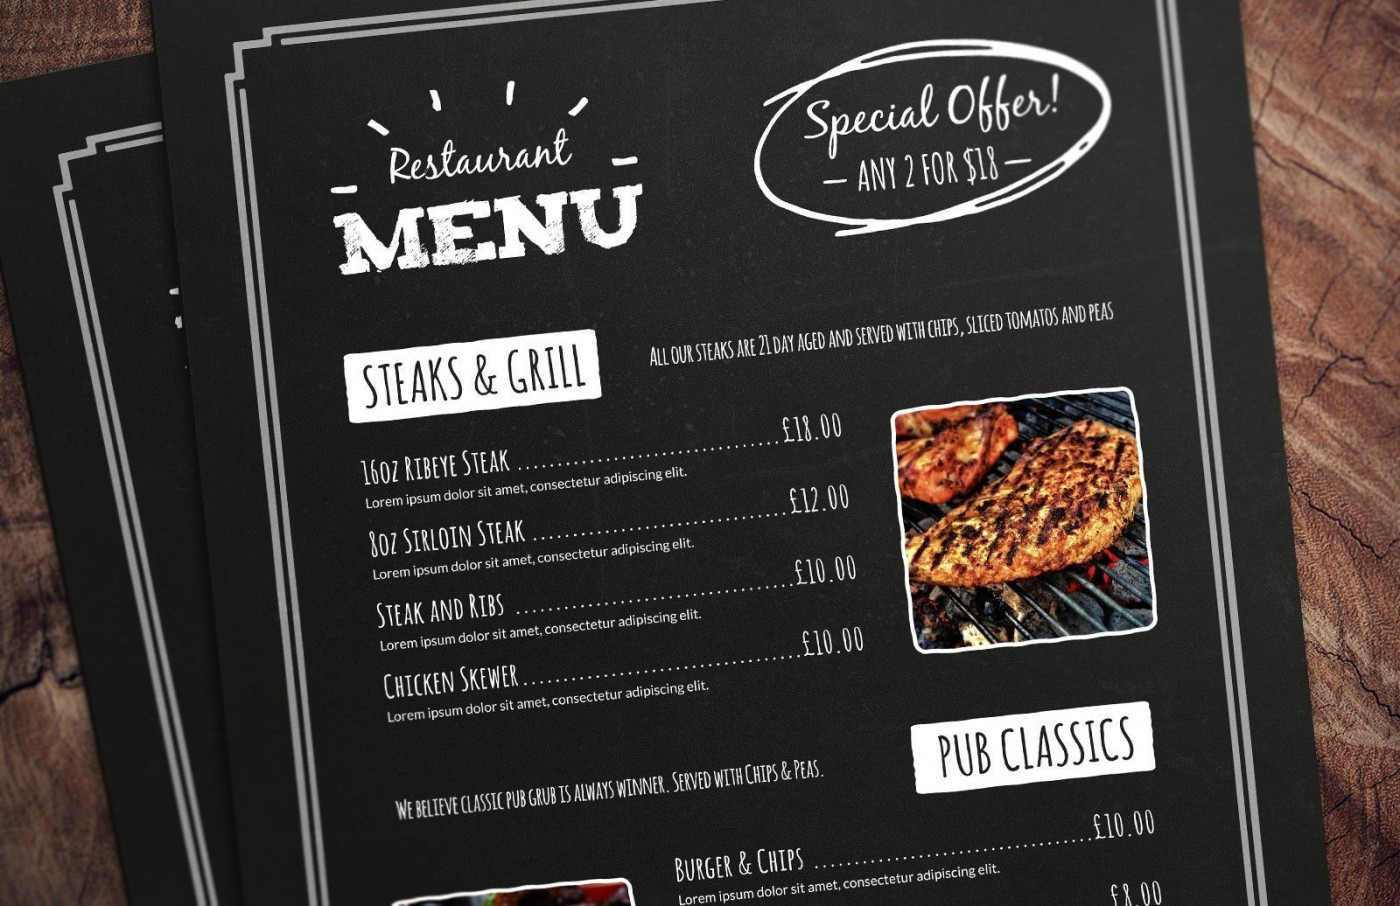 006 Staggering Free Menu Template Download Image  Beauty Parlour Card Html Design Restaurant1400